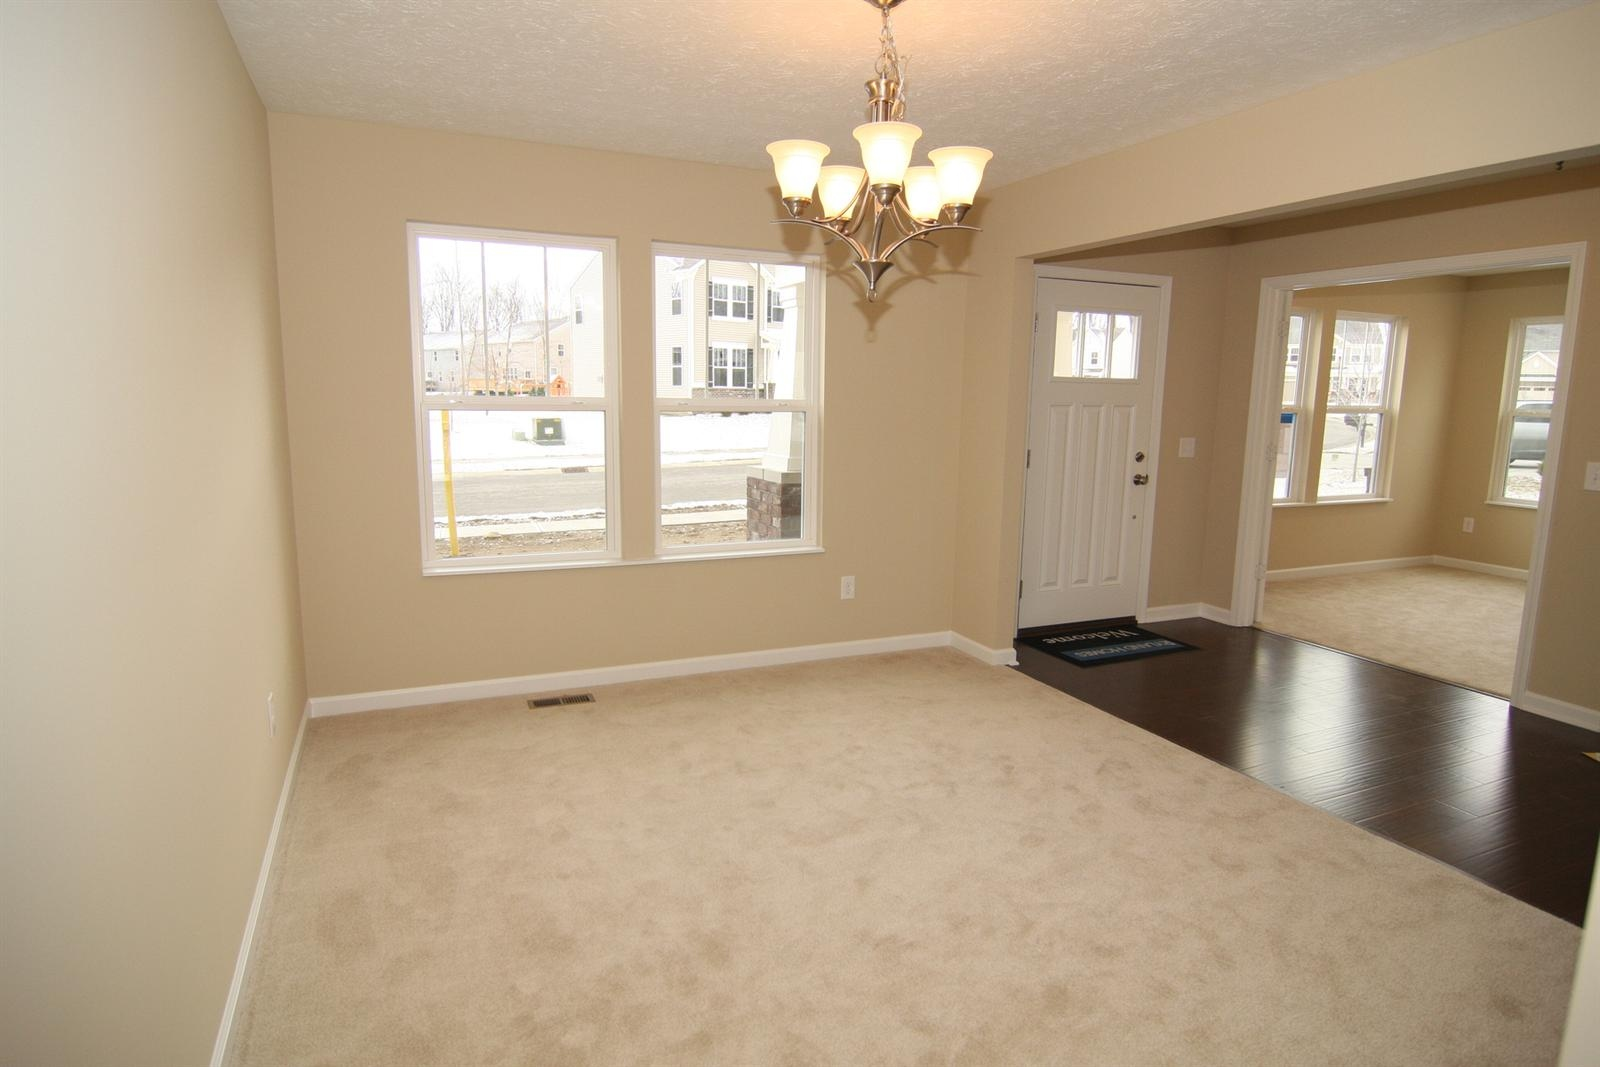 Real Estate Photography - 4852 Corydon Ln, Indianapolis, IN, 46239 - Location 8